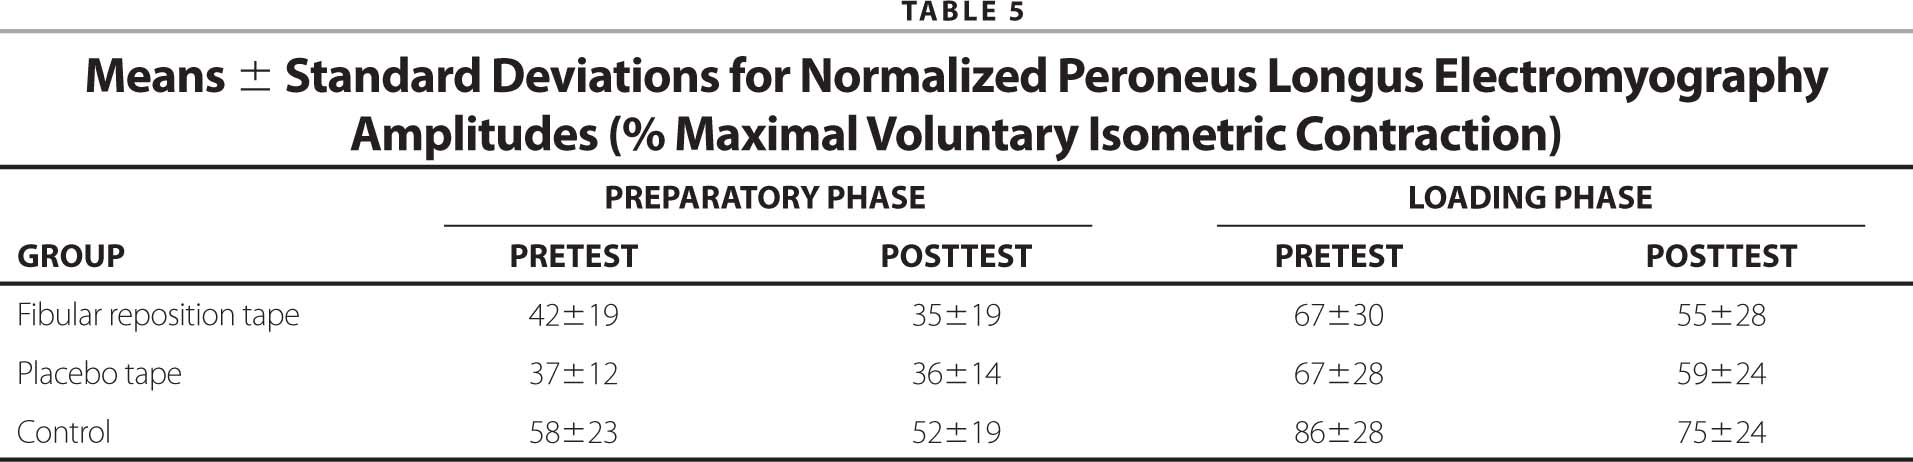 Means ± Standard Deviations for Normalized Peroneus Longus Electromyography Amplitudes (% Maximal Voluntary Isometric Contraction)